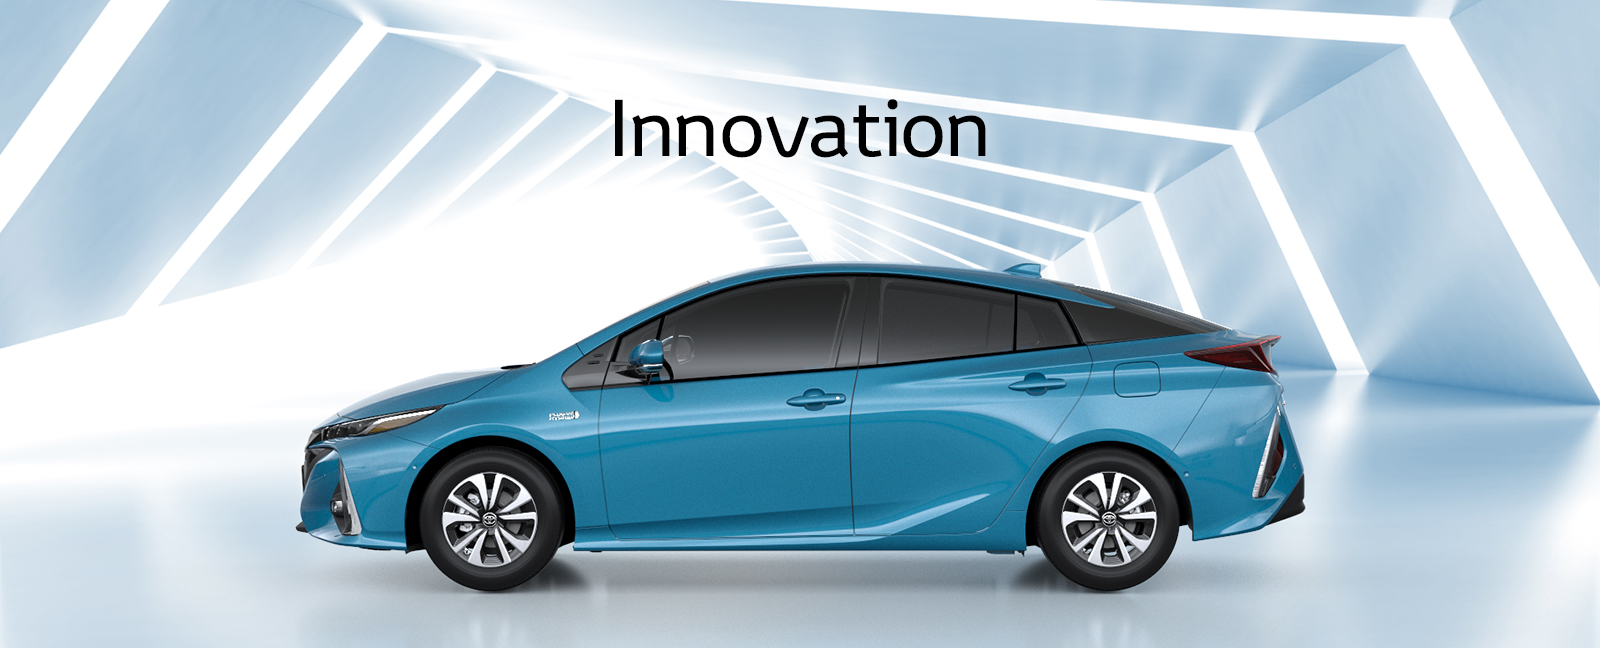 toyota global site | innovation